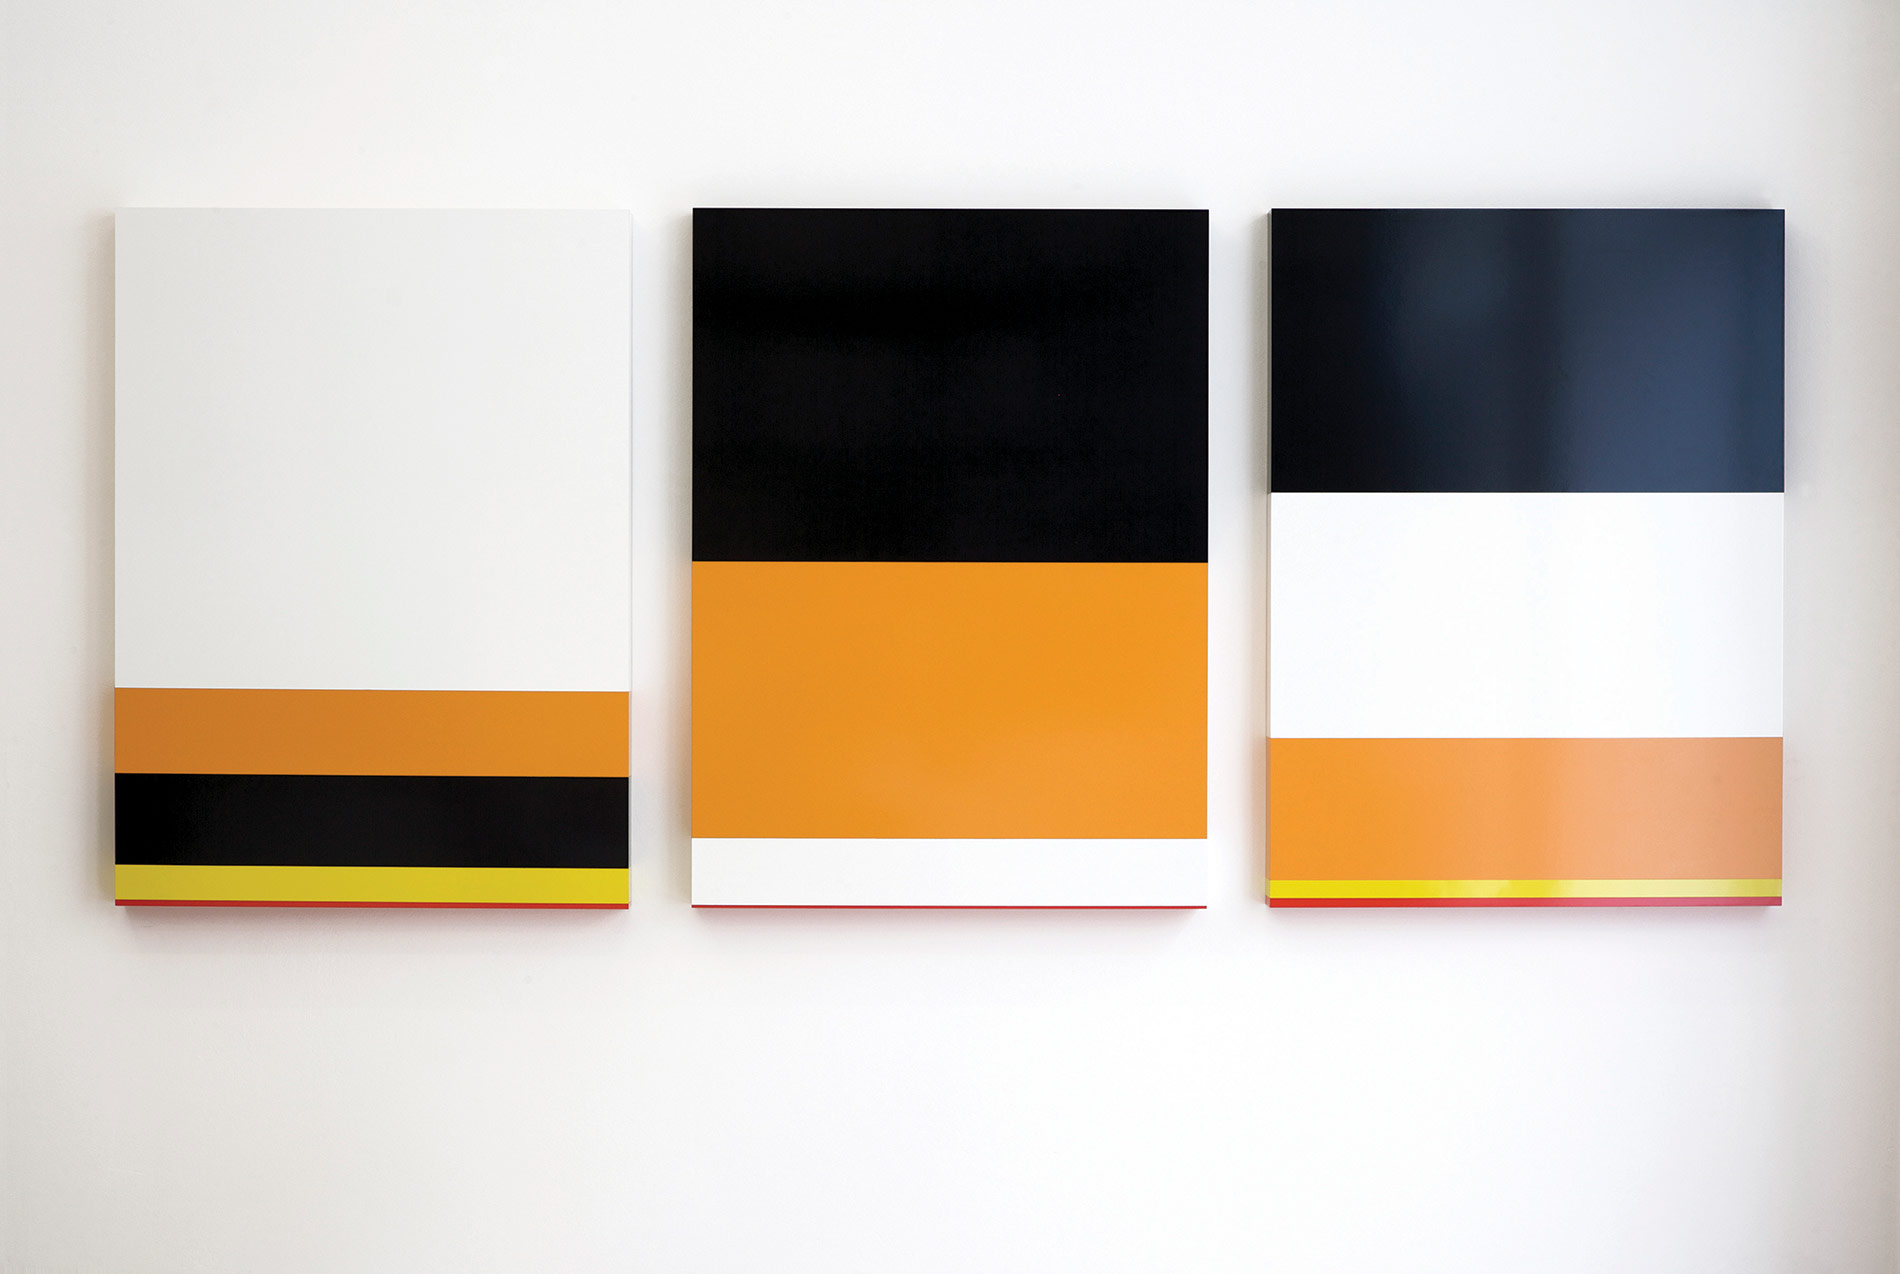 American Colors, 2009. USA population by race, USA poverty rate by race, USA prison population by race. Formica on wood 110 x 82 x 7 cm each